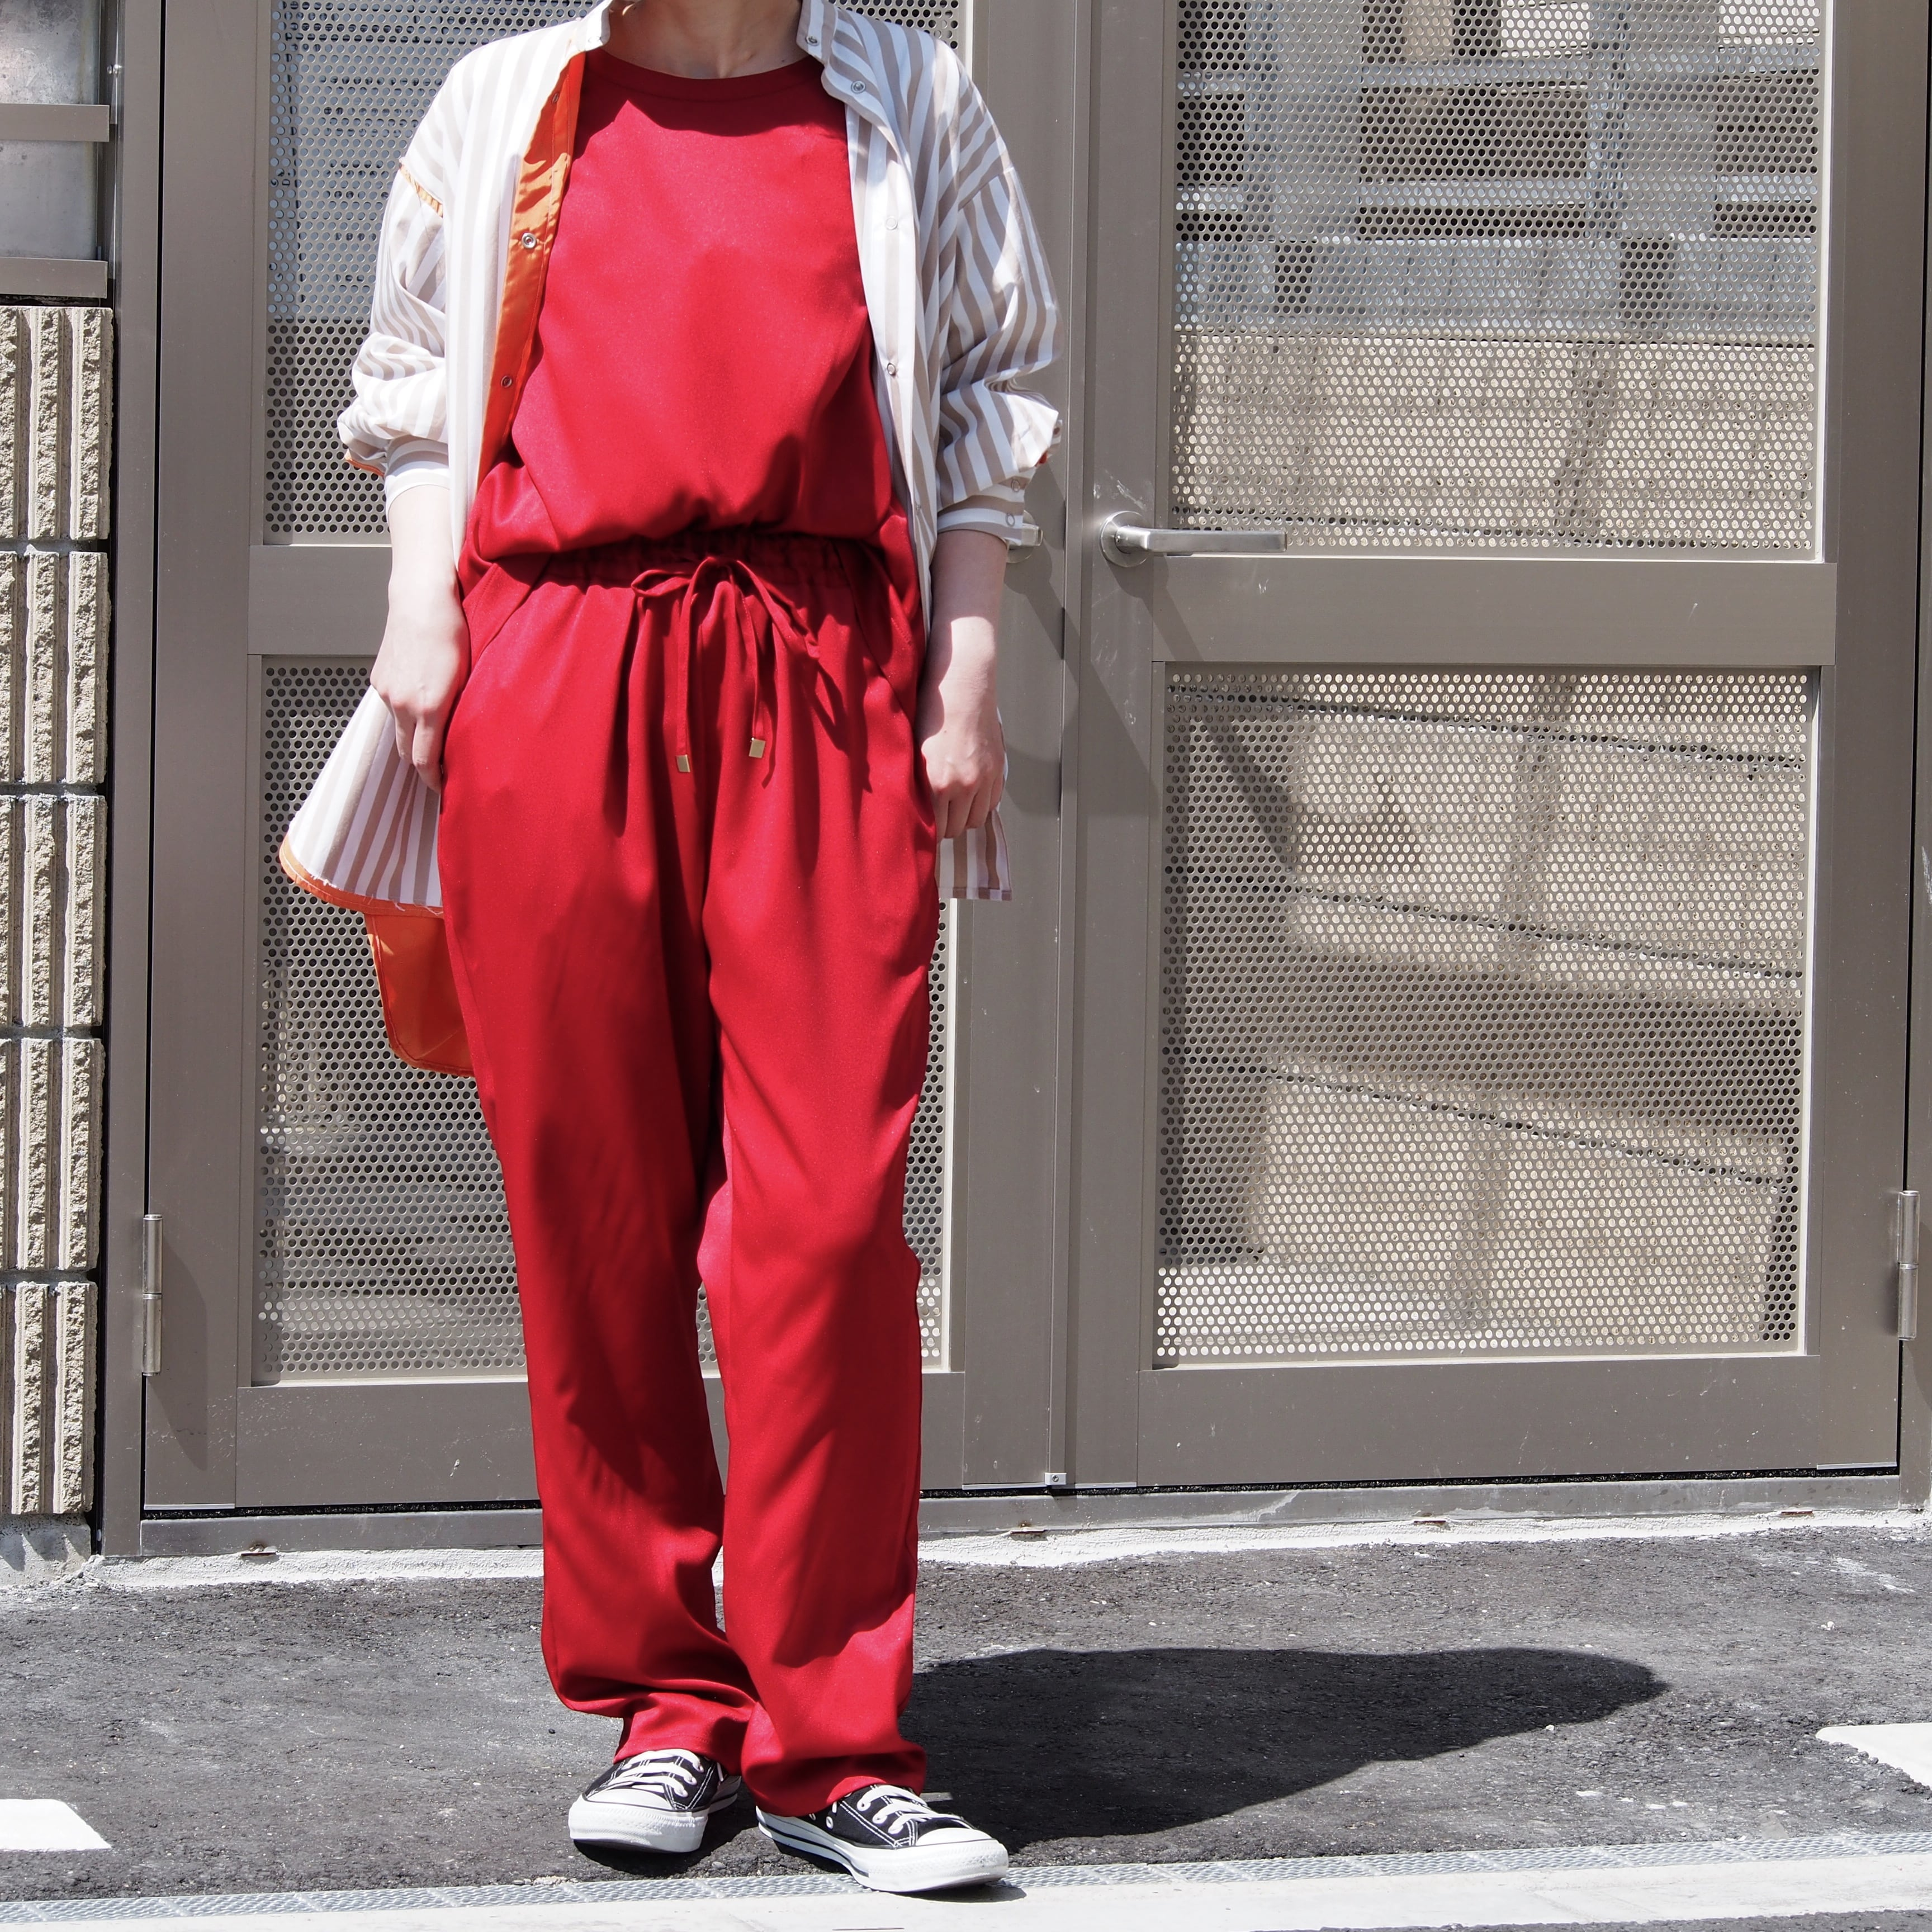 【ethical hippi】tapered pants(antique red) / 【エシカル ヒッピ】テーパード パンツ(アンティーク レッド)